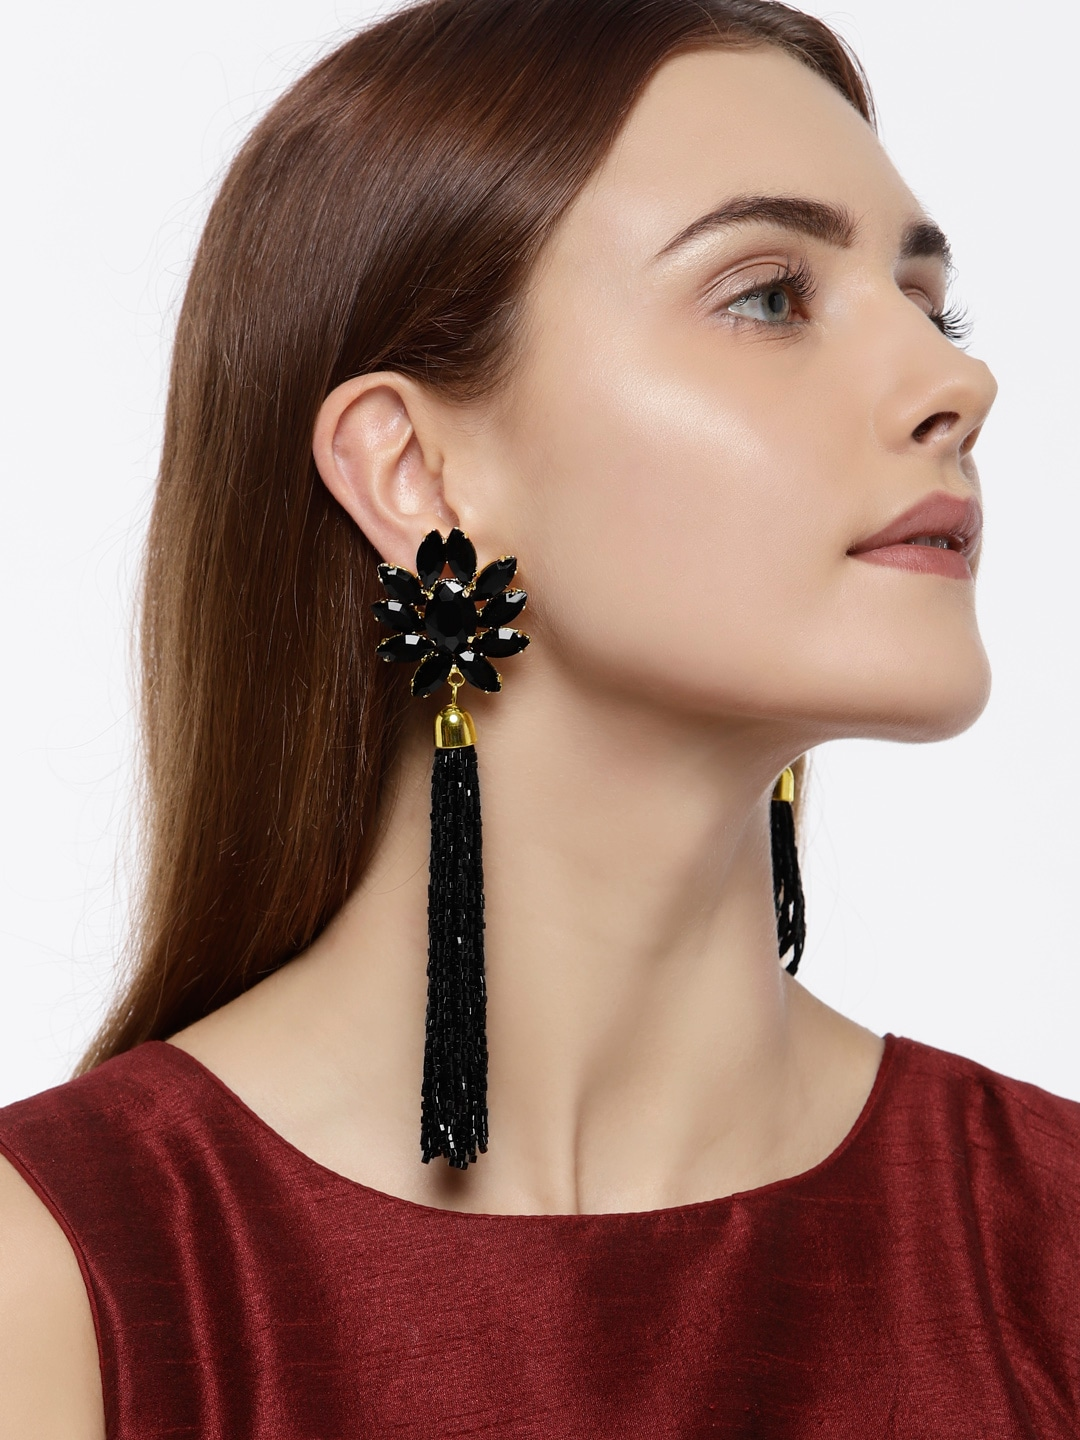 Earrings Buy Earring For Women Girls Online In India Myntra